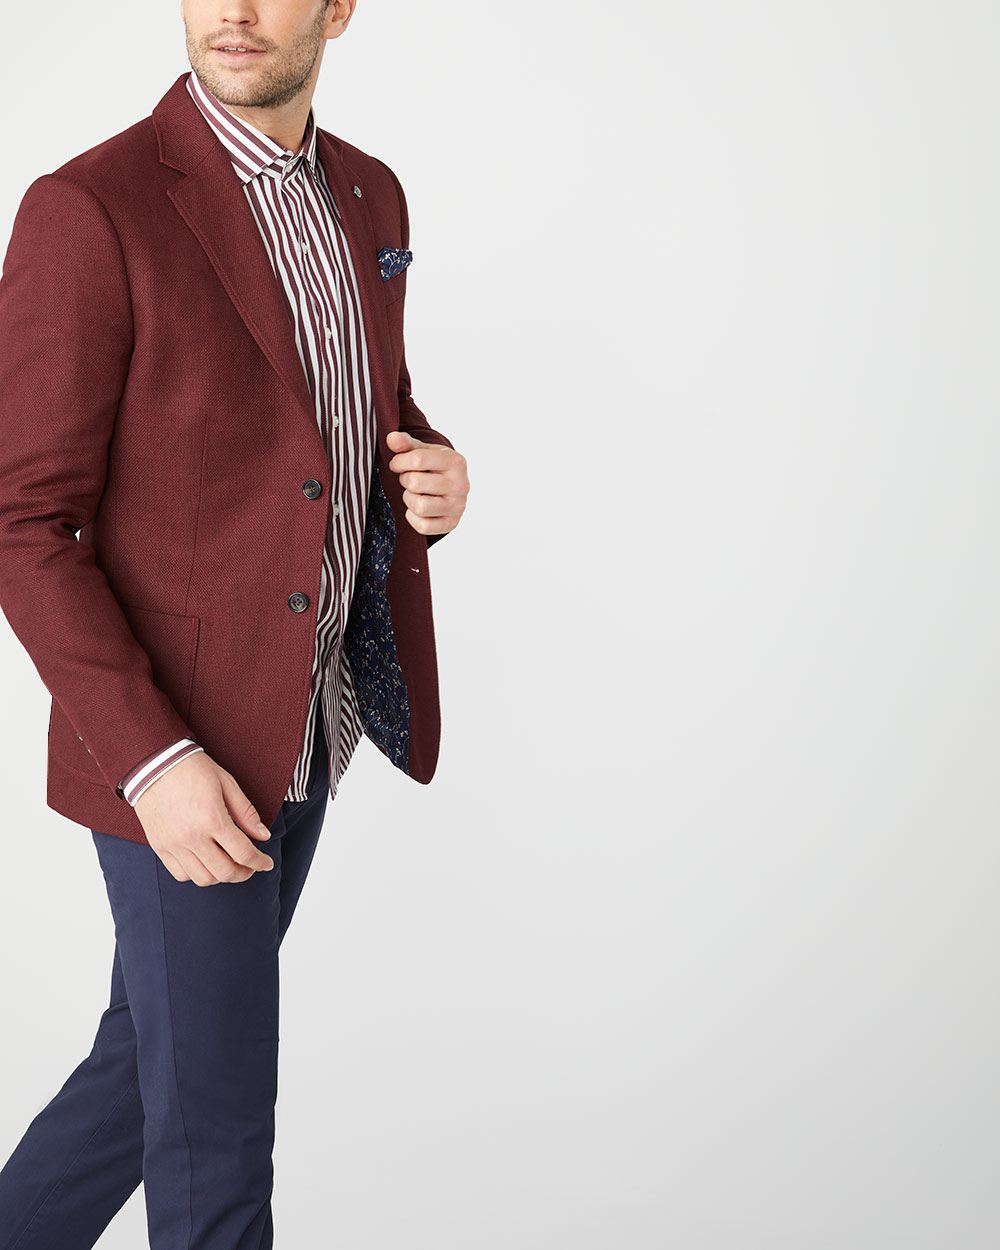 Slim Fit Burgundy red Linen-blend blazer